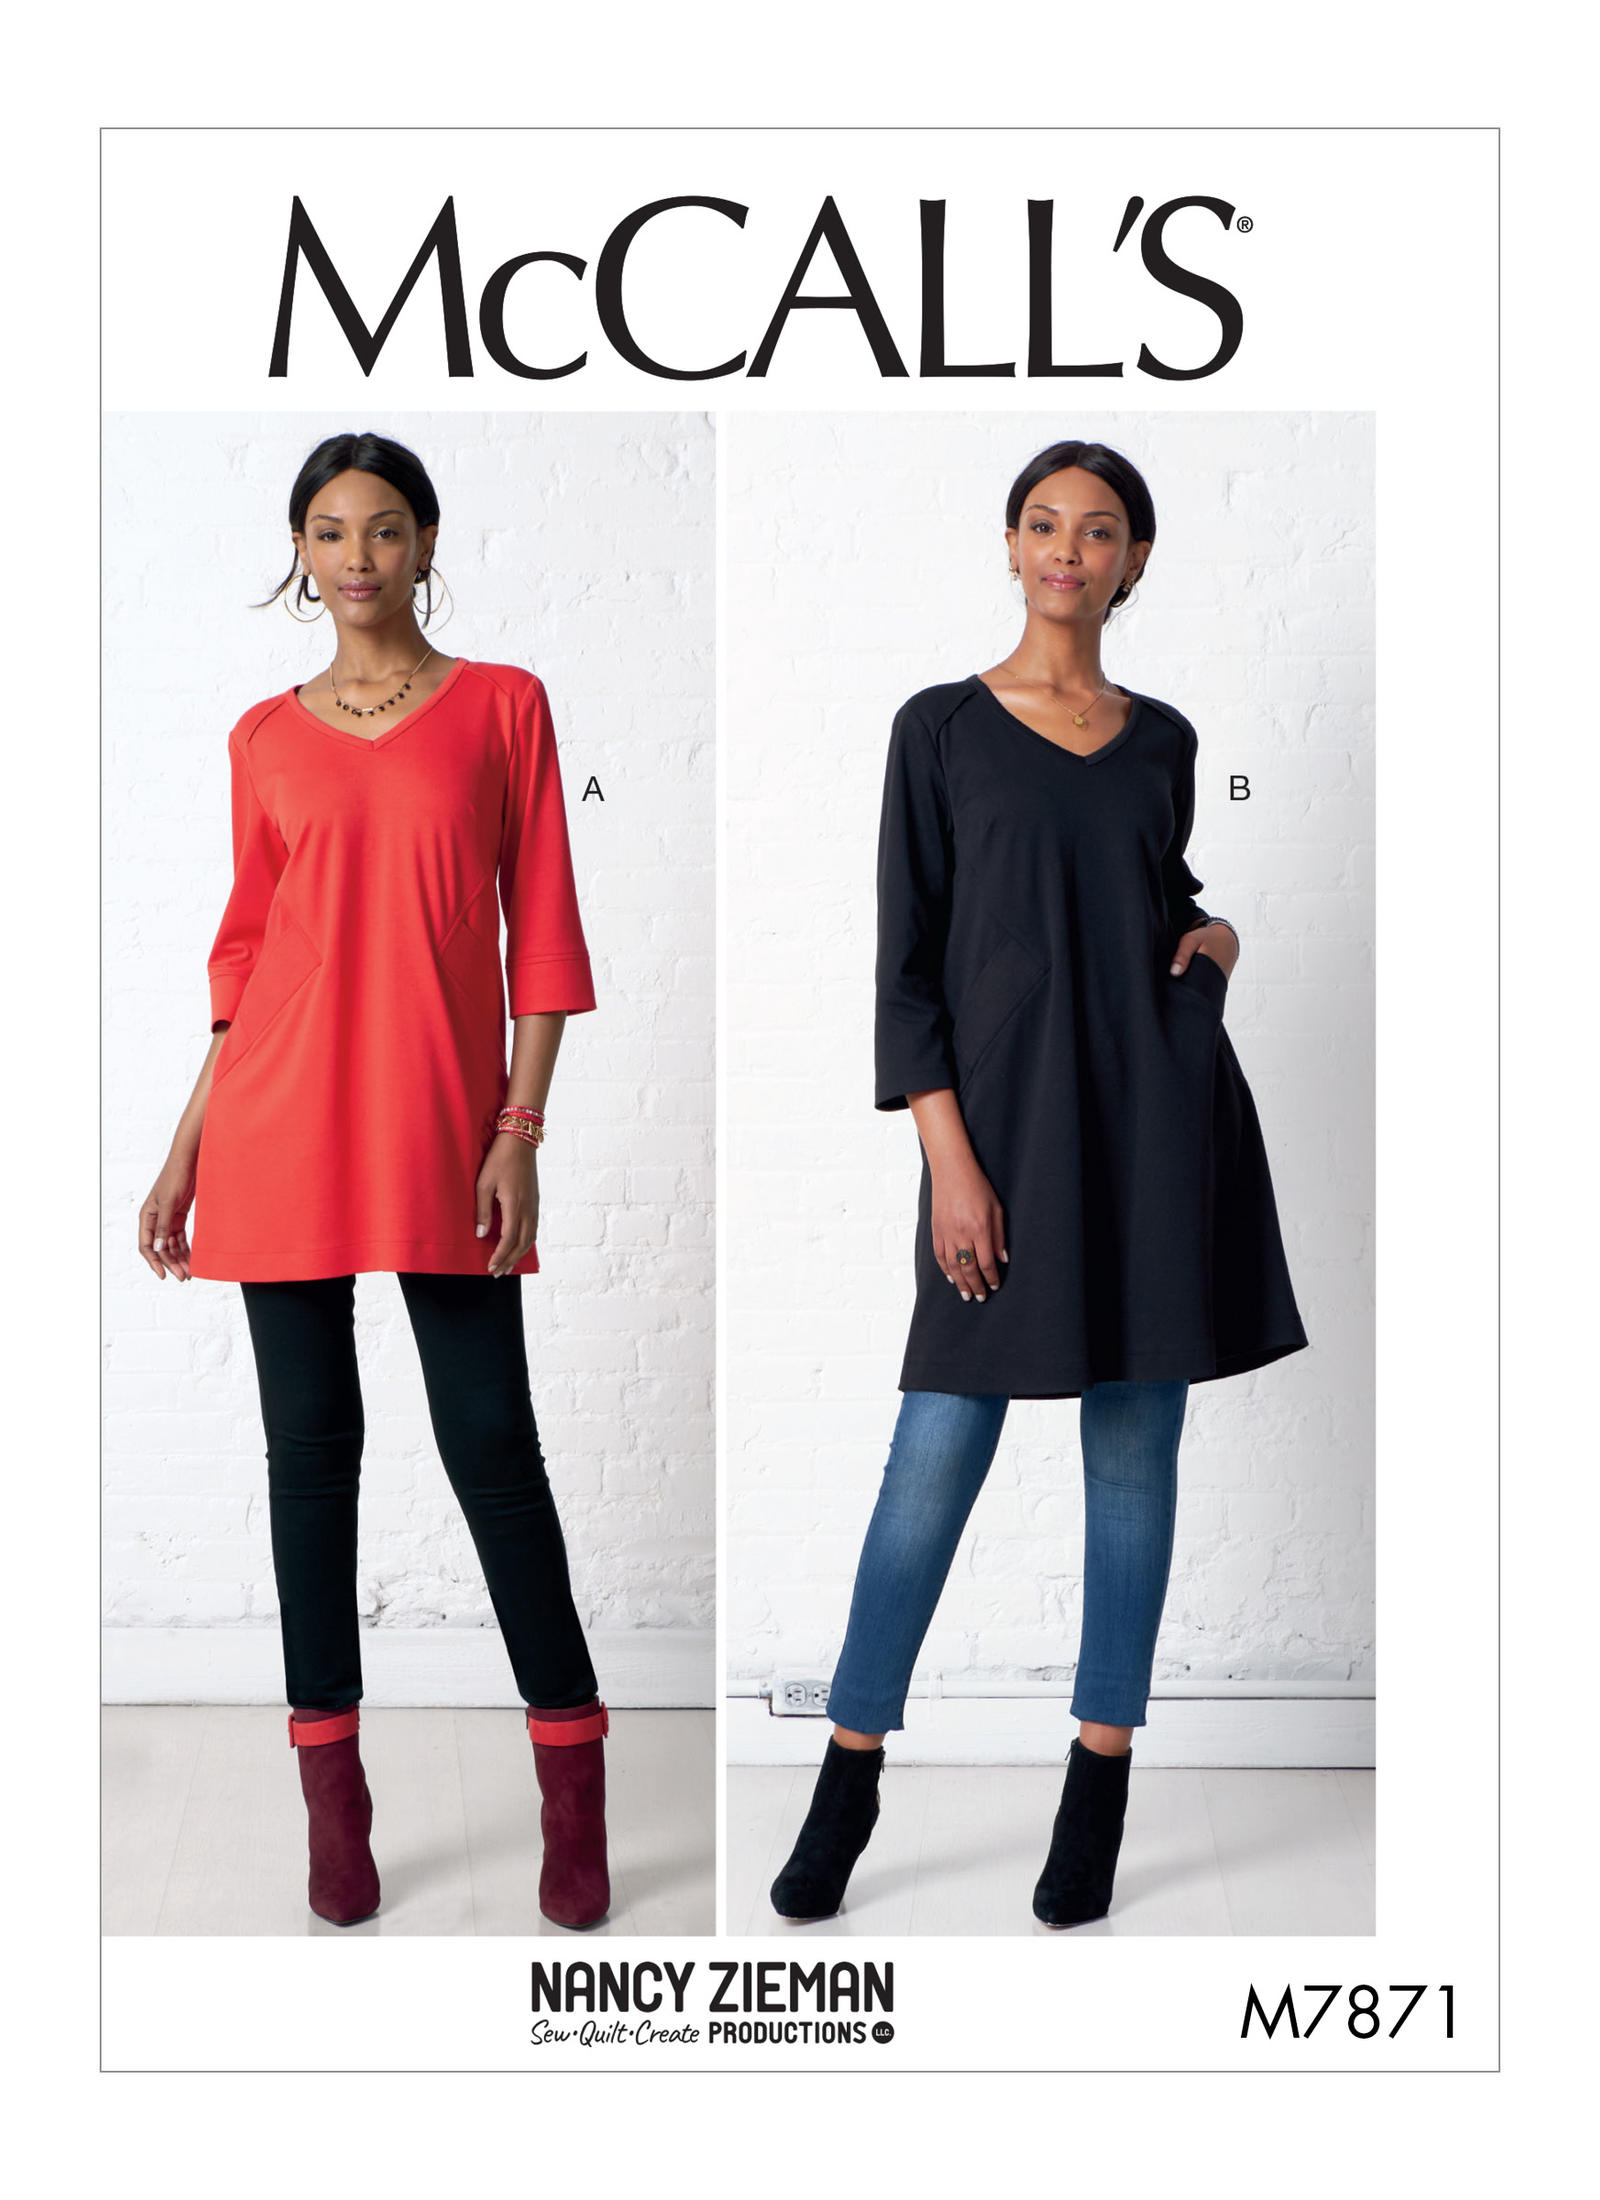 McCalls M7871 Knit Tunics and Dress Pattern by Nancy Zieman Productions available at ShopNZP.com